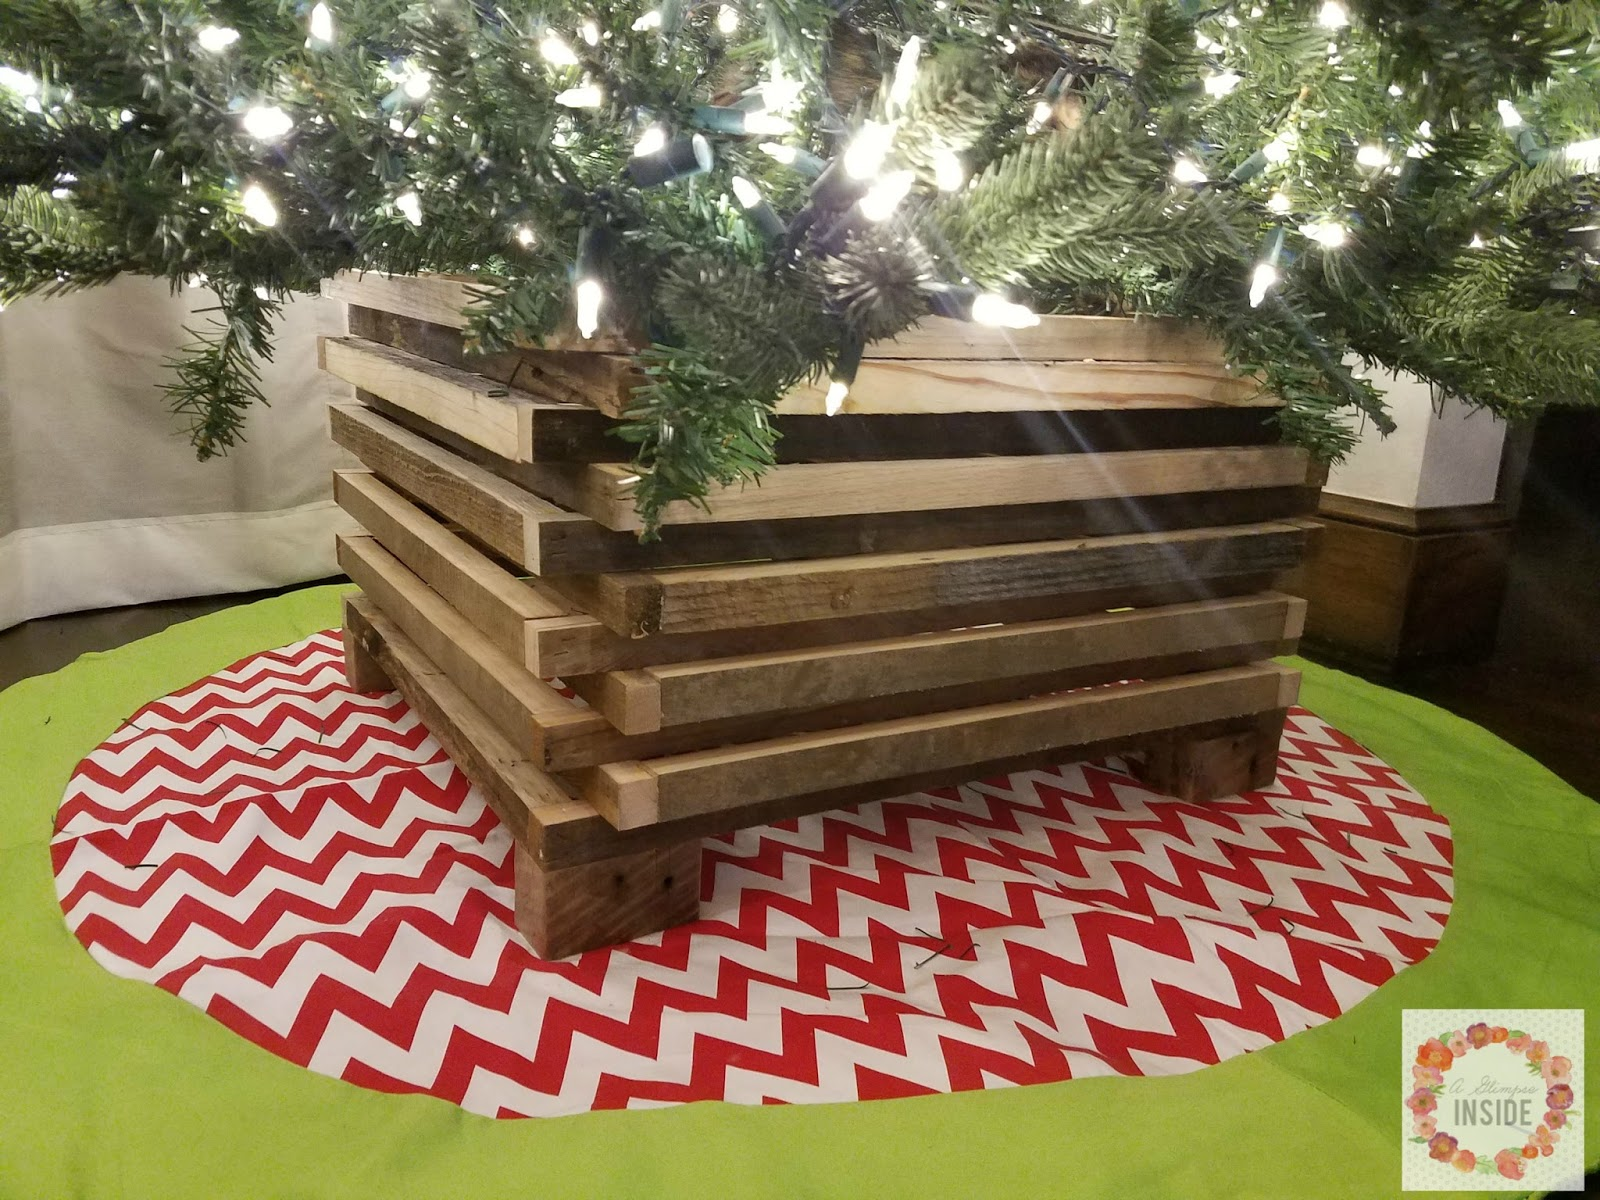 Diy Rustic Christmas Tree Stand A Glimpse Inside